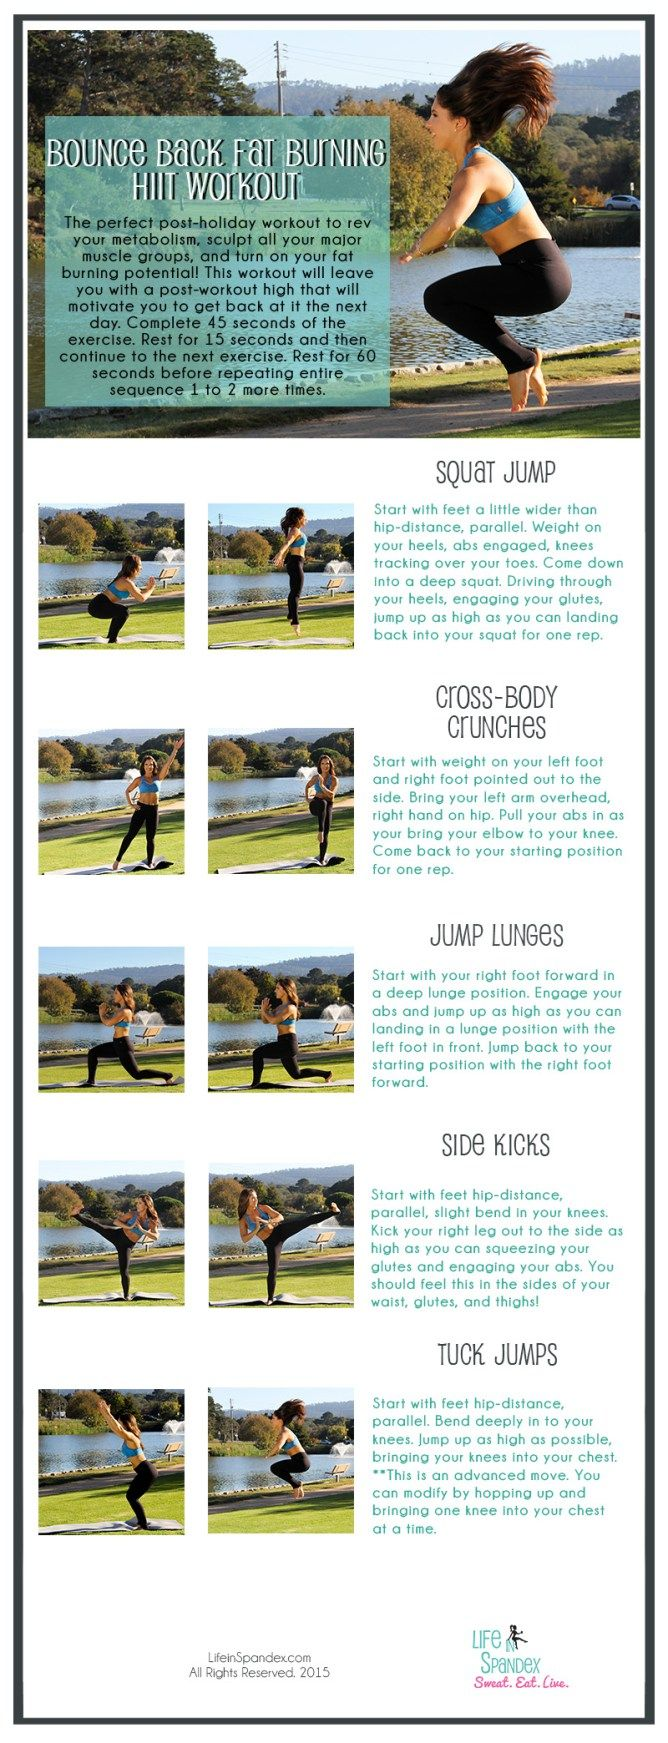 This Bounce Back Fat Blasting HIIT Workout will rev your metabolism, sculpt all your major muscle groups, and turn on your fat burning potential! This workout will leave you with a post-workout high that will motivate you to get back at it the next day.